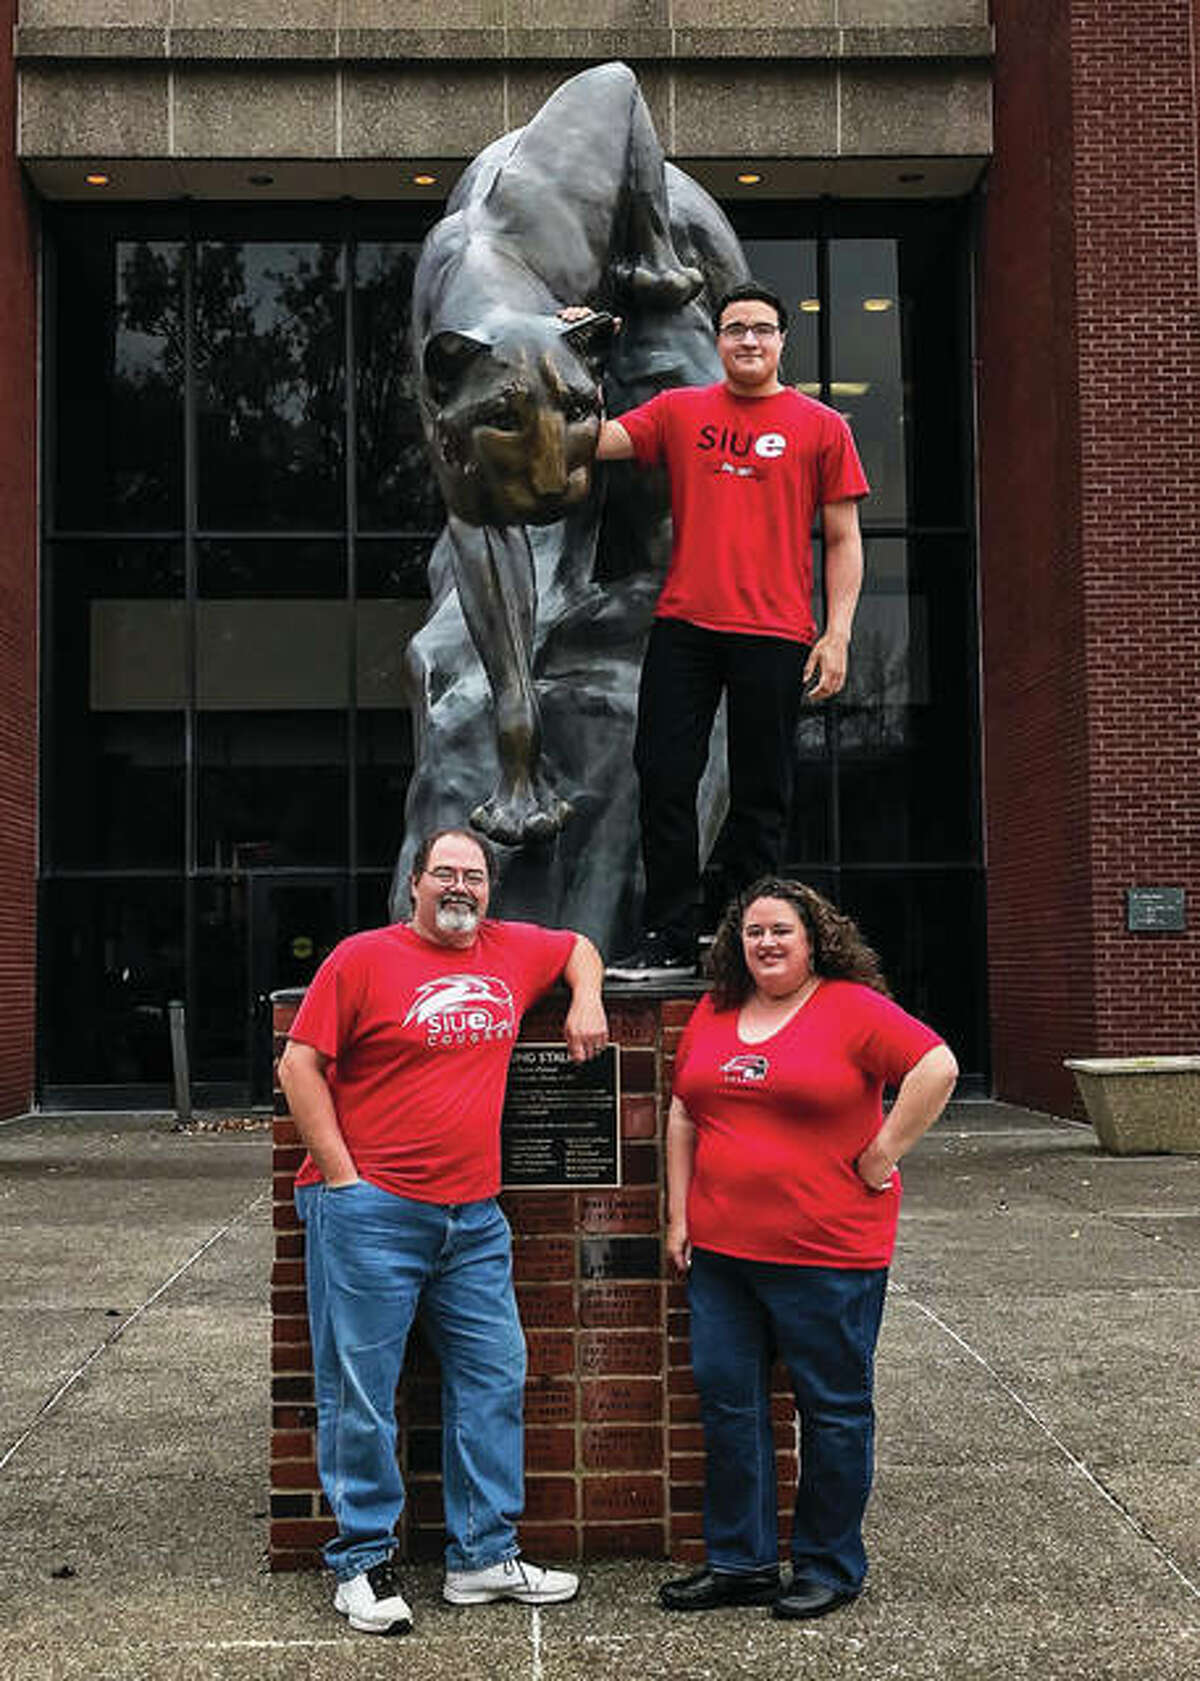 Edwardsville residents and family of three Ian Smith, top, 20, Jim Gillentine, left, 52, and his wife, who's also Ian's mother, Elizabeth Donald, 44, all are students at Southern Illinois University Edwardsville, representing the spectrum of students: traditional college age; nontraditional (Gillentine); and, master's level (Donald). They've attended SIUE at the same time, with the exception of this summer while Ian attends Lewis and Clark Community College to save money and get; Ian will resume studies at SIUE this fall. Gillentine and Donald will graduate from SIUE in May 2020; Ian is still deciding on a major.